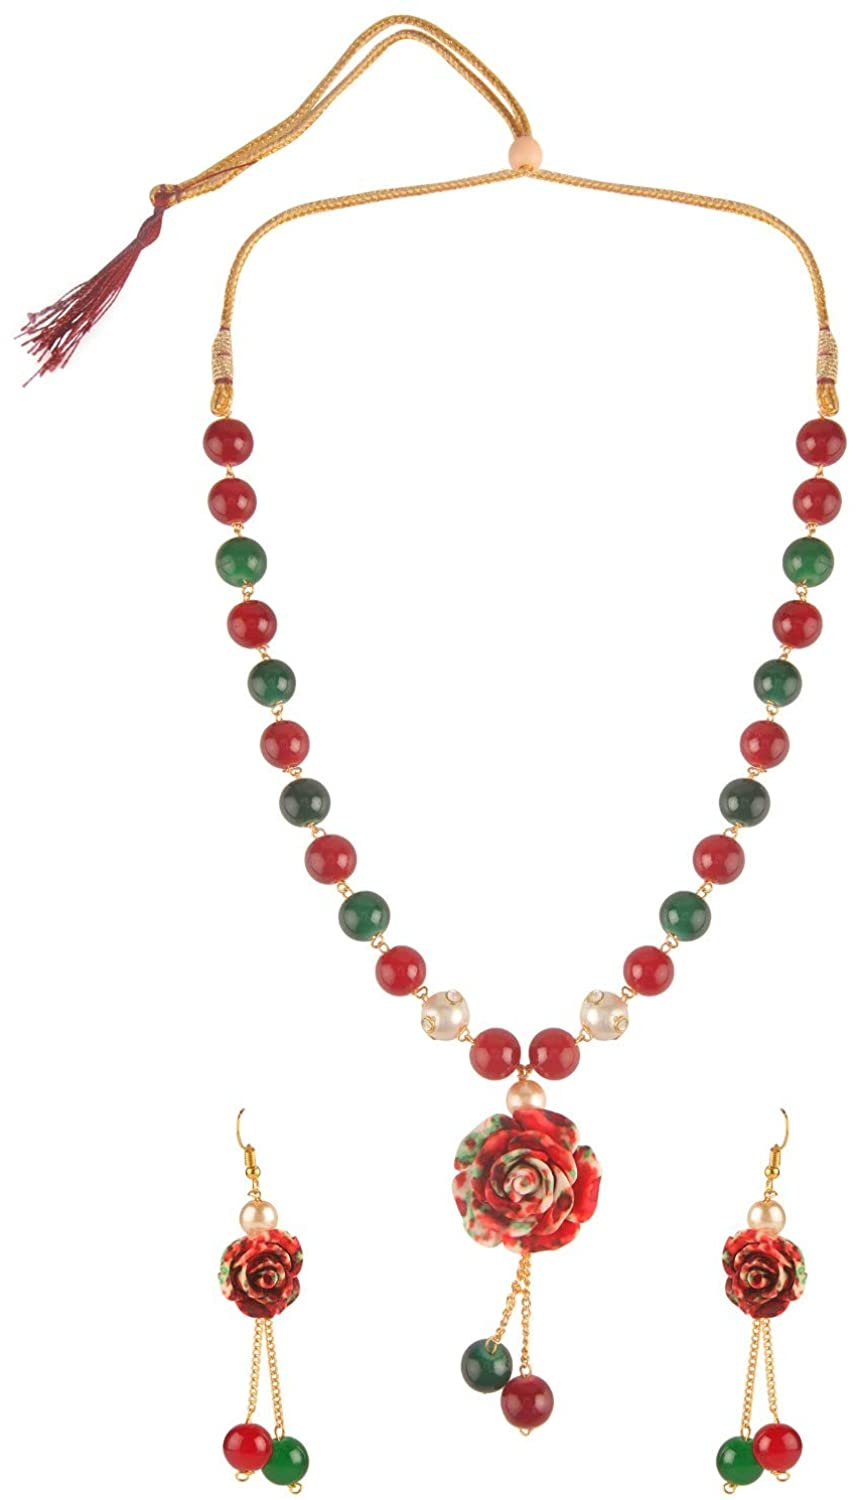 Efulgenz Multi Color Floral Faux Pearl Beads Strand Necklace Earrings Fashion Costume Jewelry Set for Women Girls